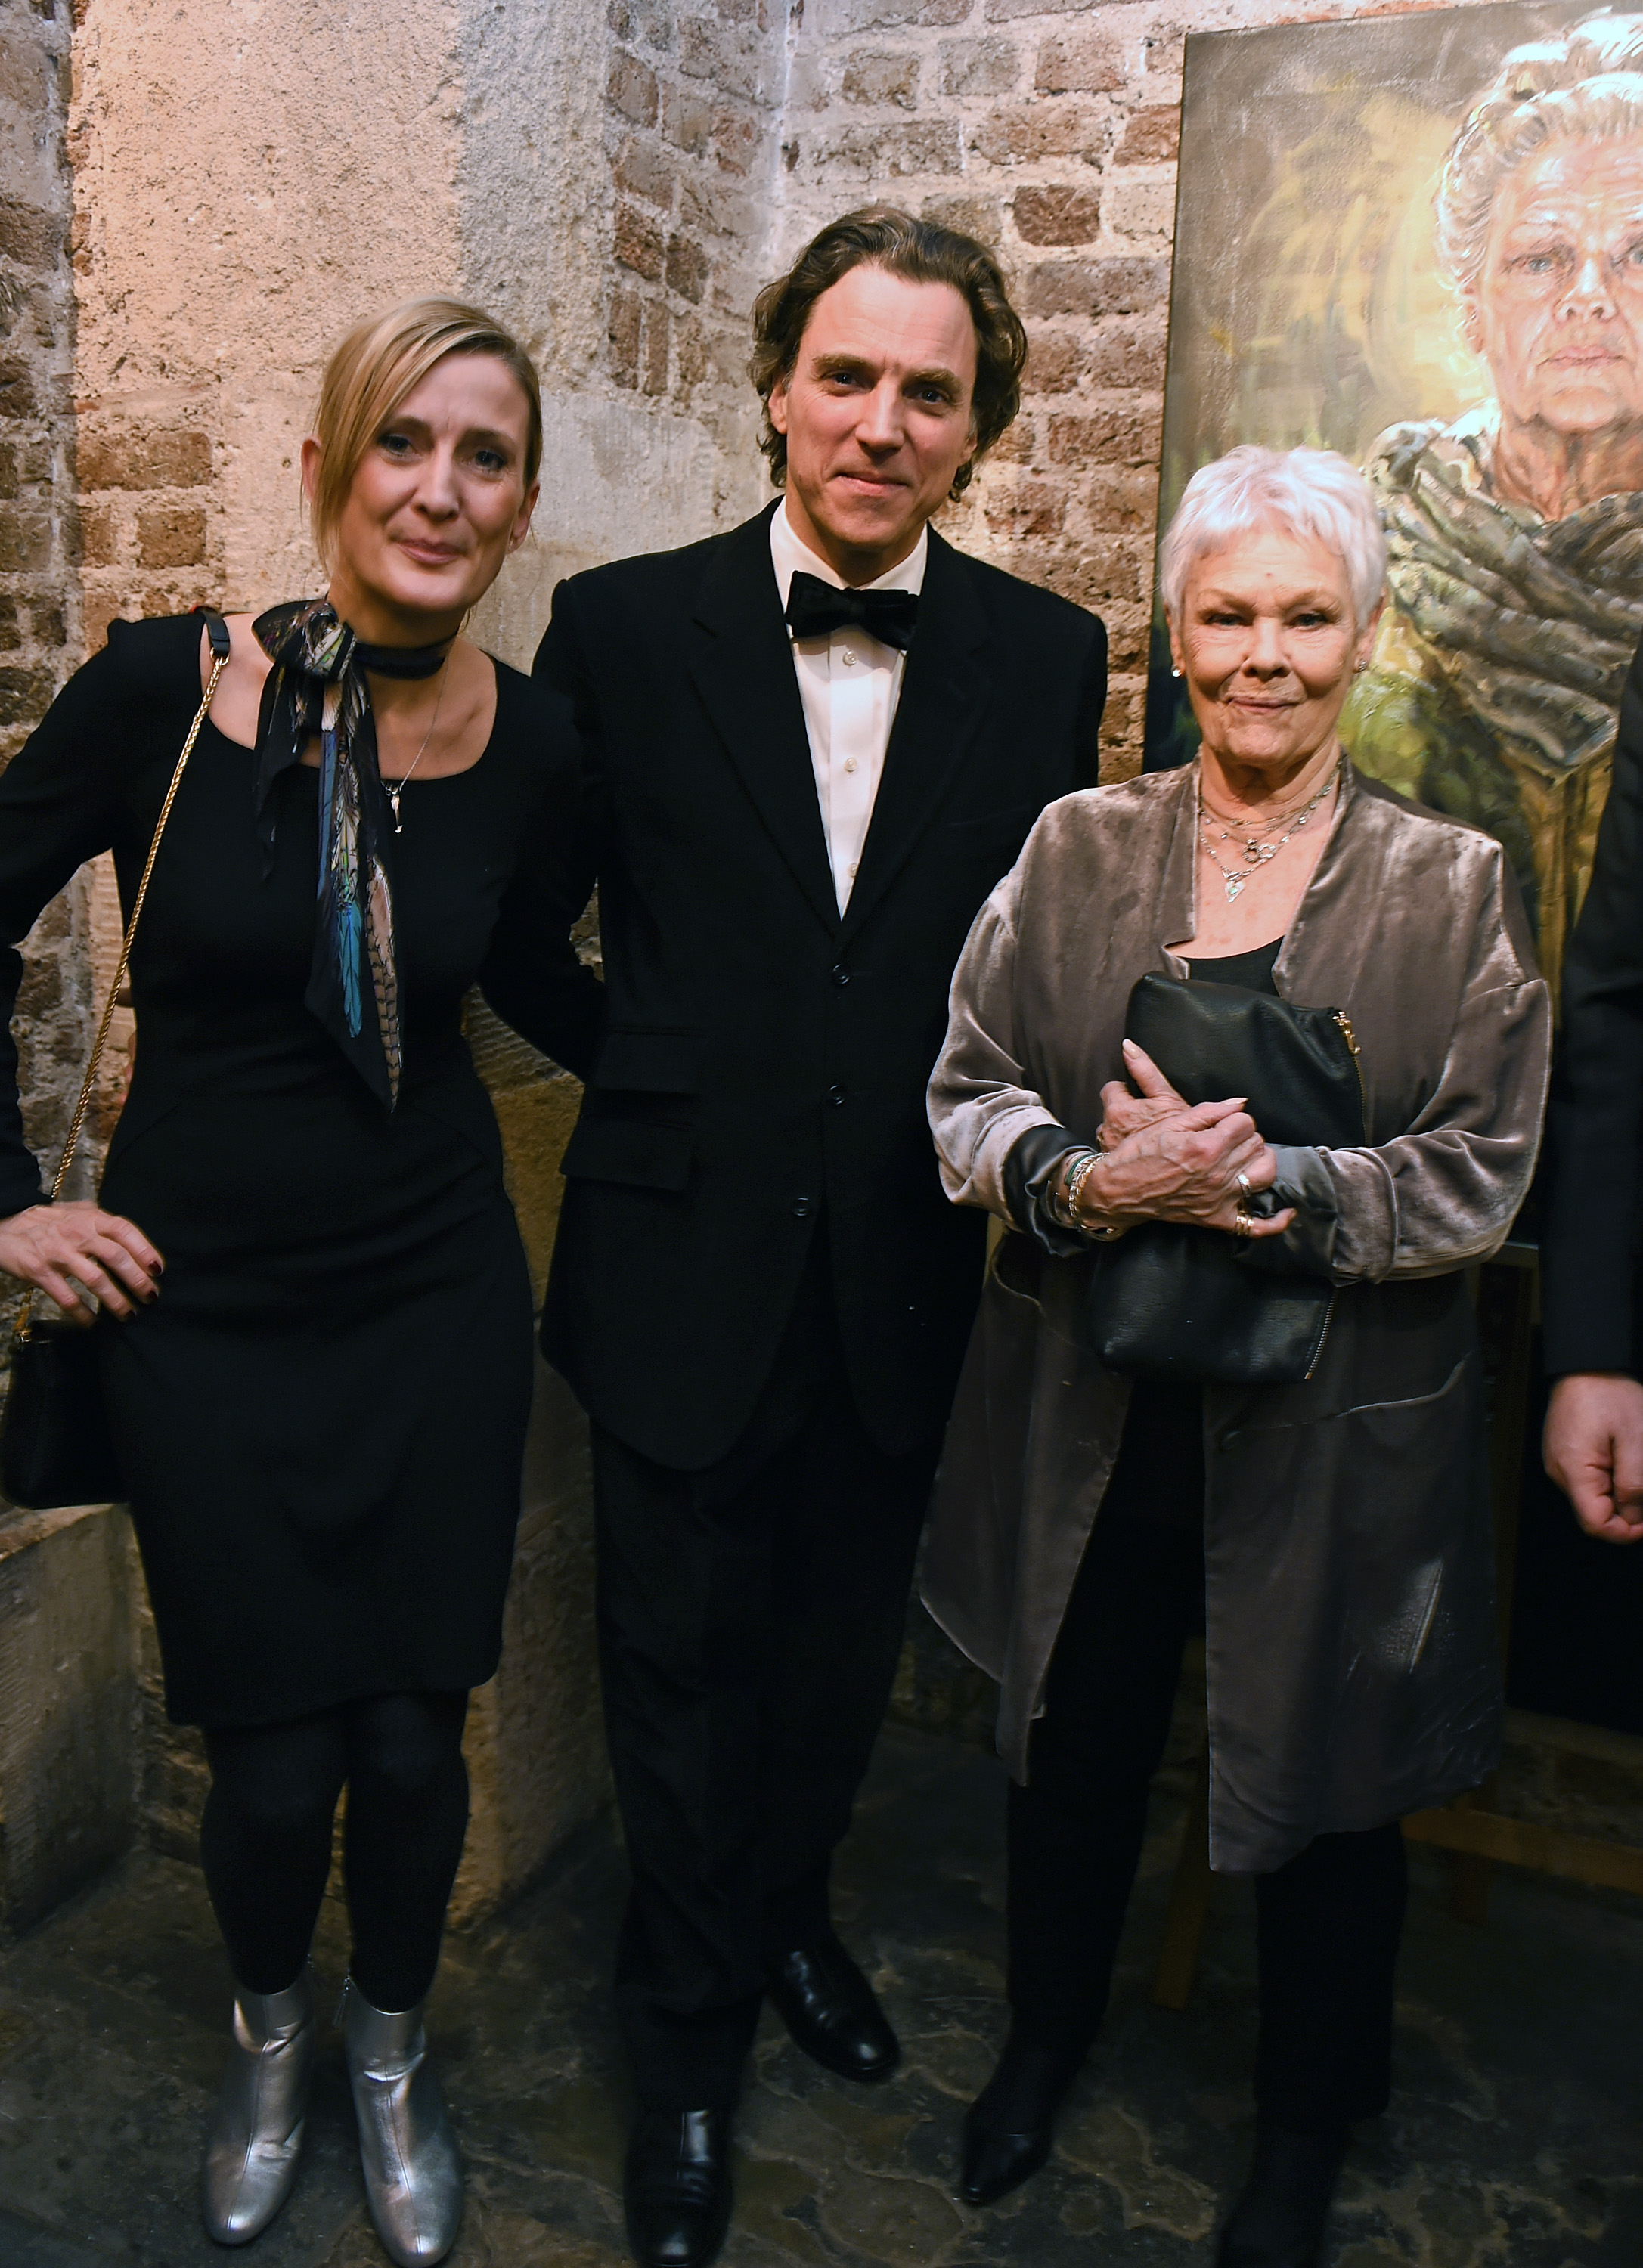 Lee Sharrock, Alexander Newley & Dame Judi Dench  St Martin-in-the-Fields gala dinner & auction of Alexander Newley portraits